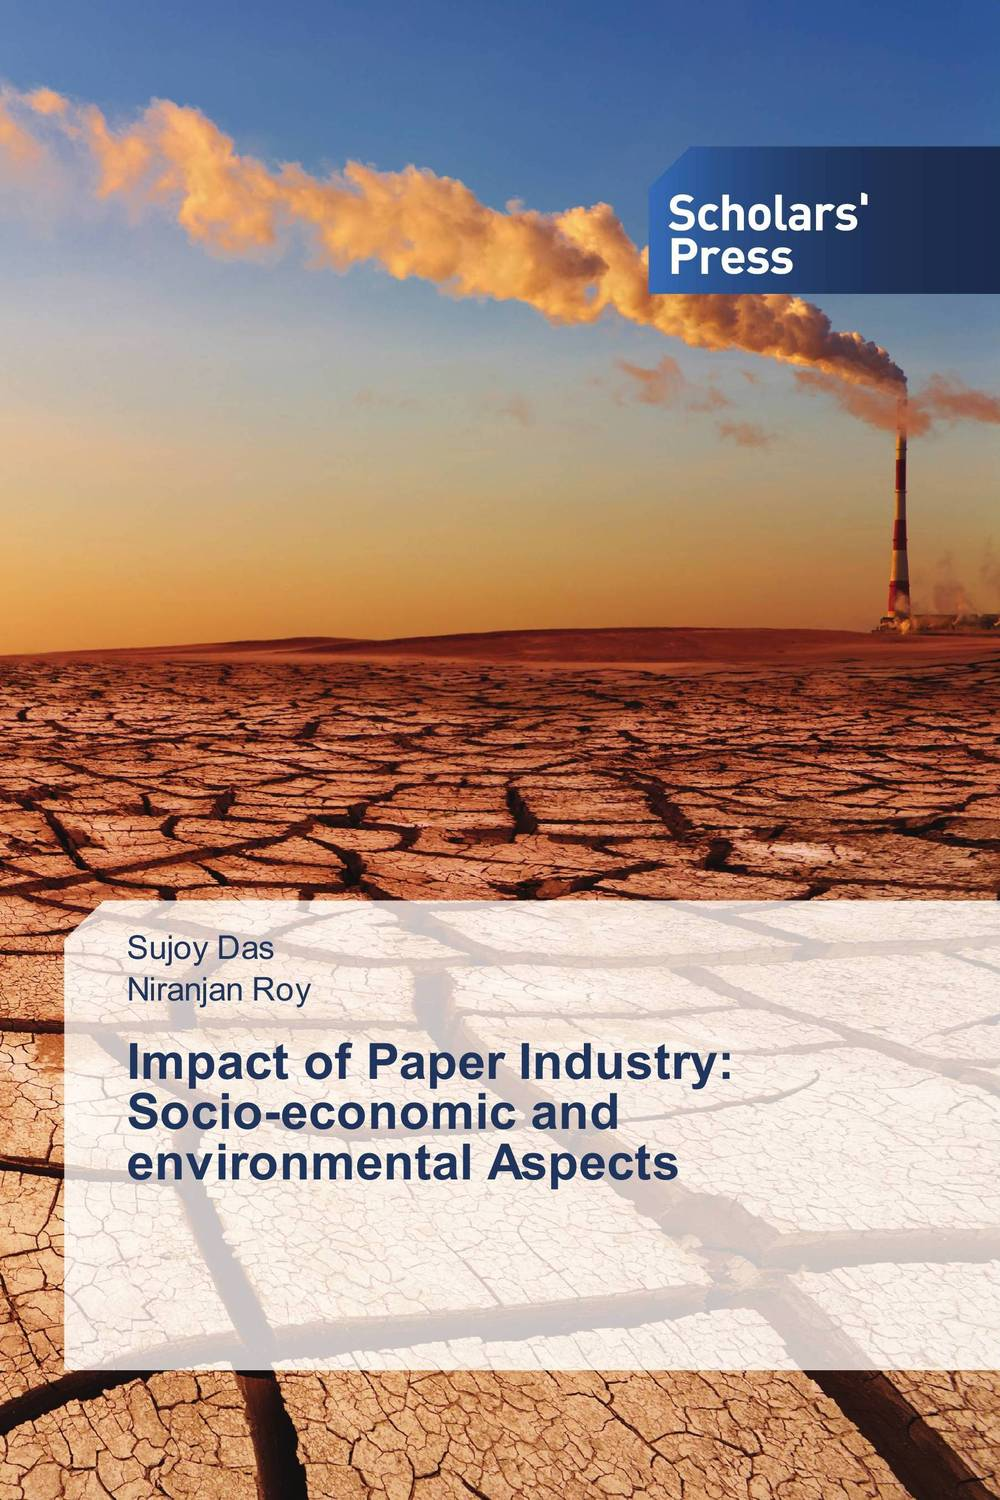 Impact of Paper Industry: Socio-economic and environmental Aspects